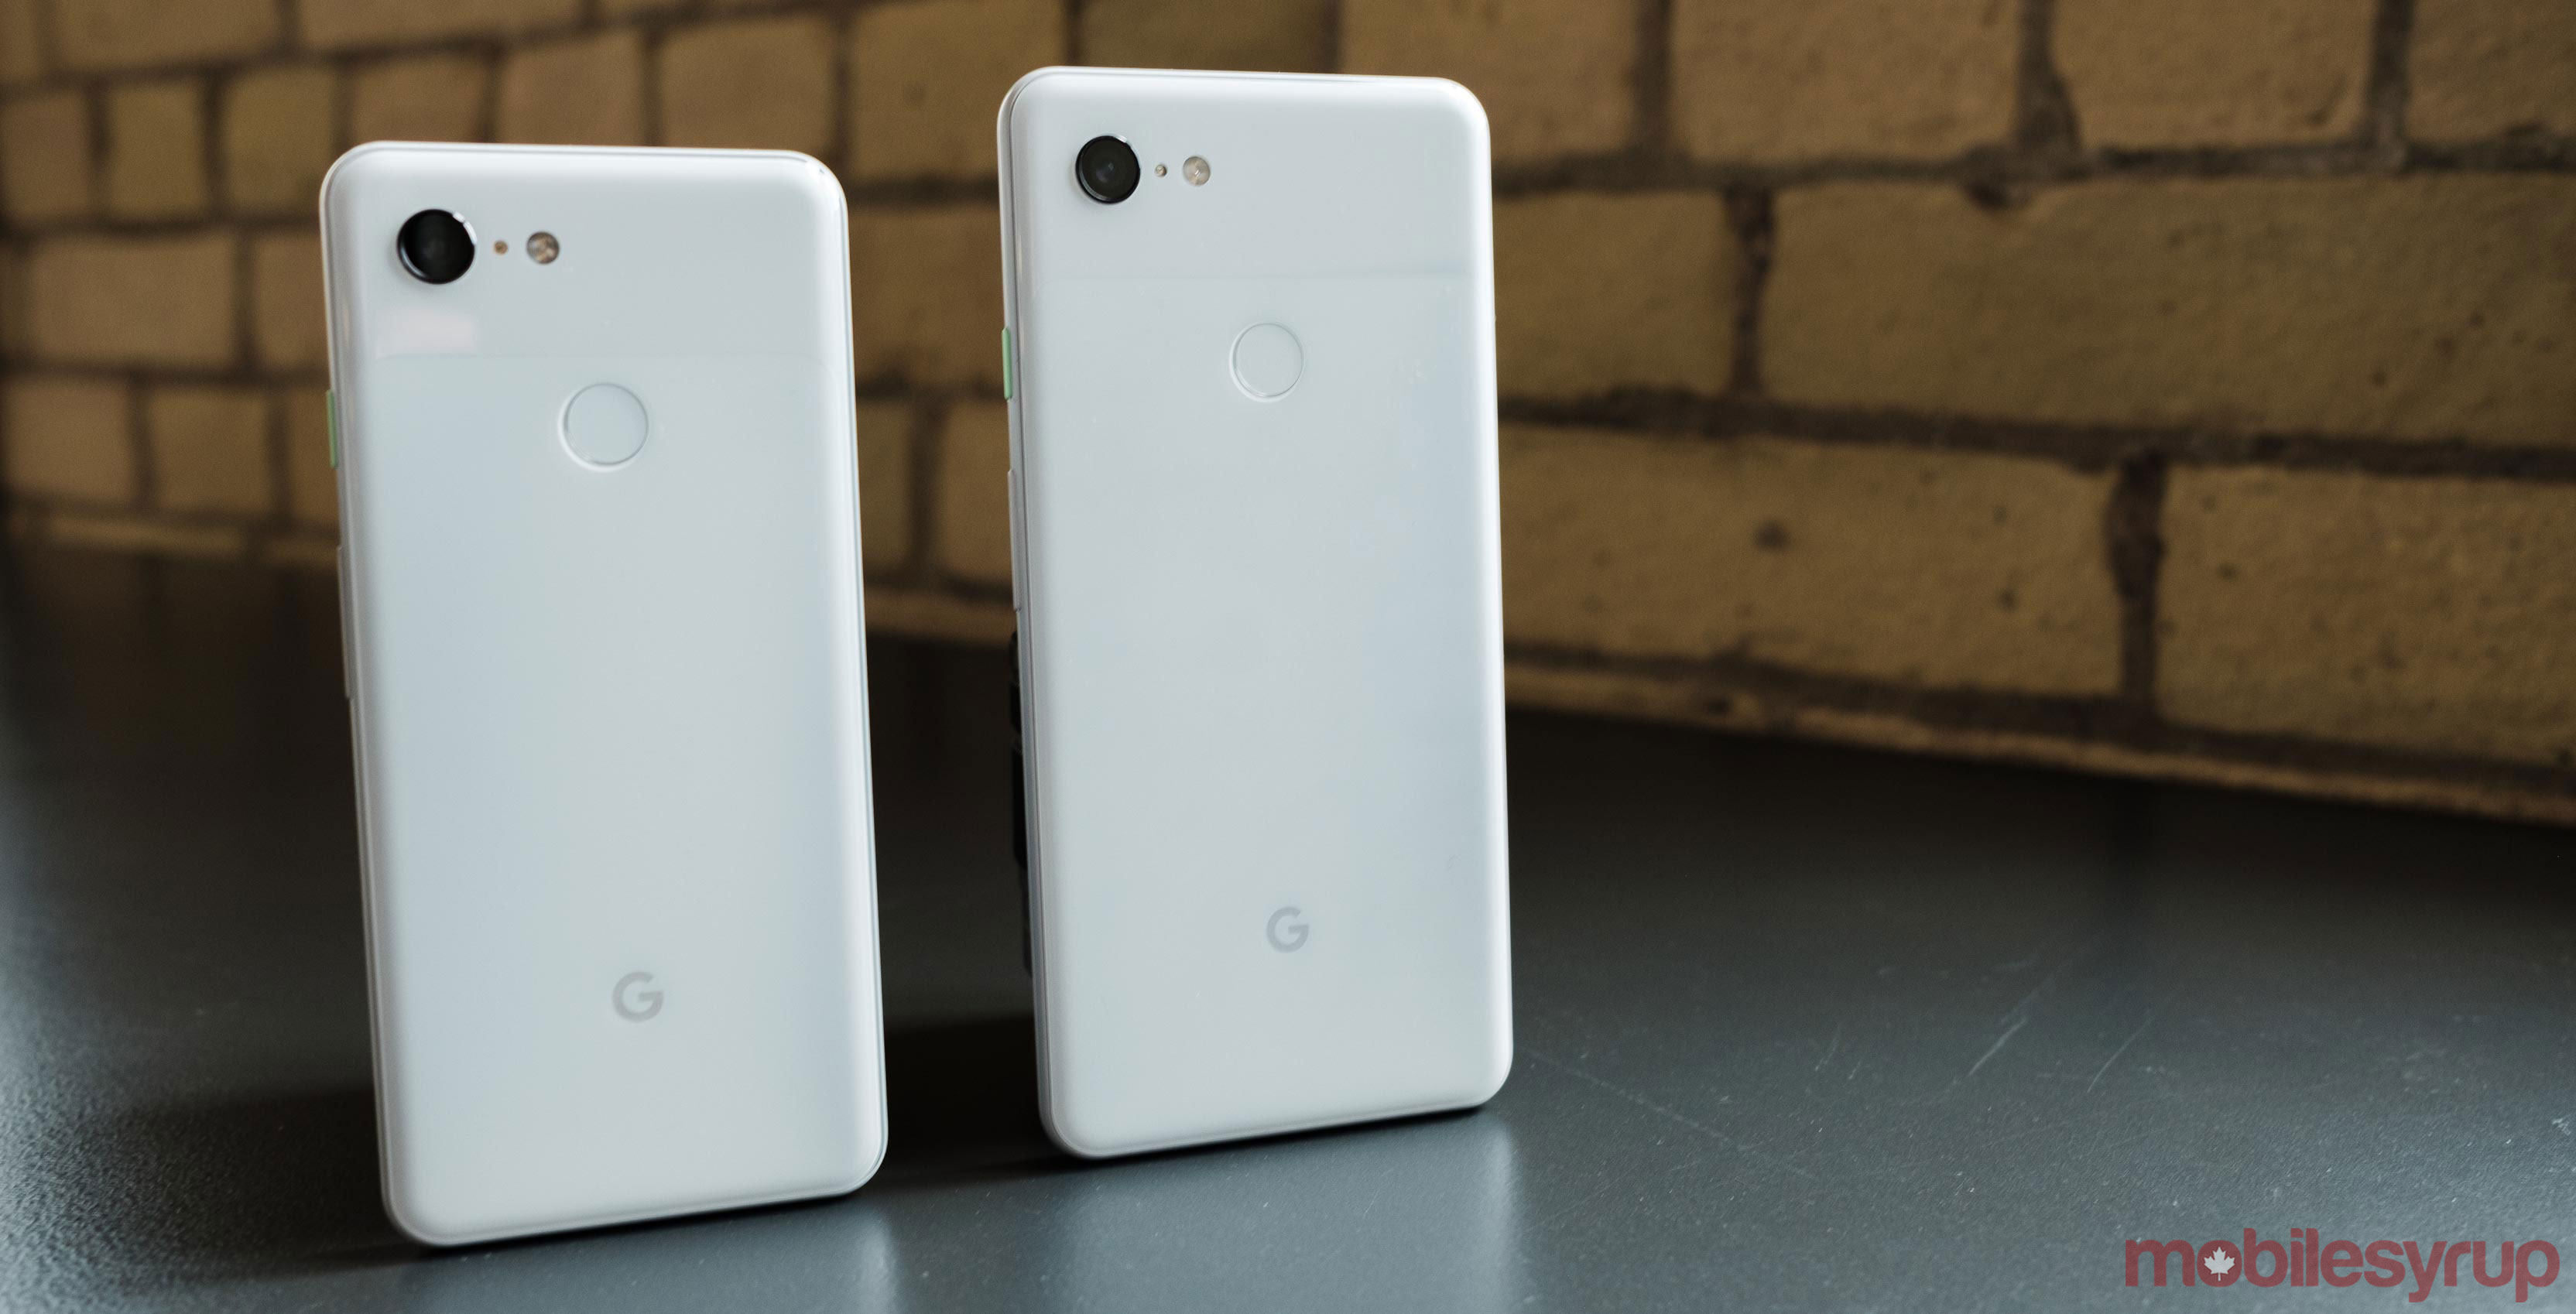 Some Pixel 3 users experiencing stuttering issue with camera autofocus